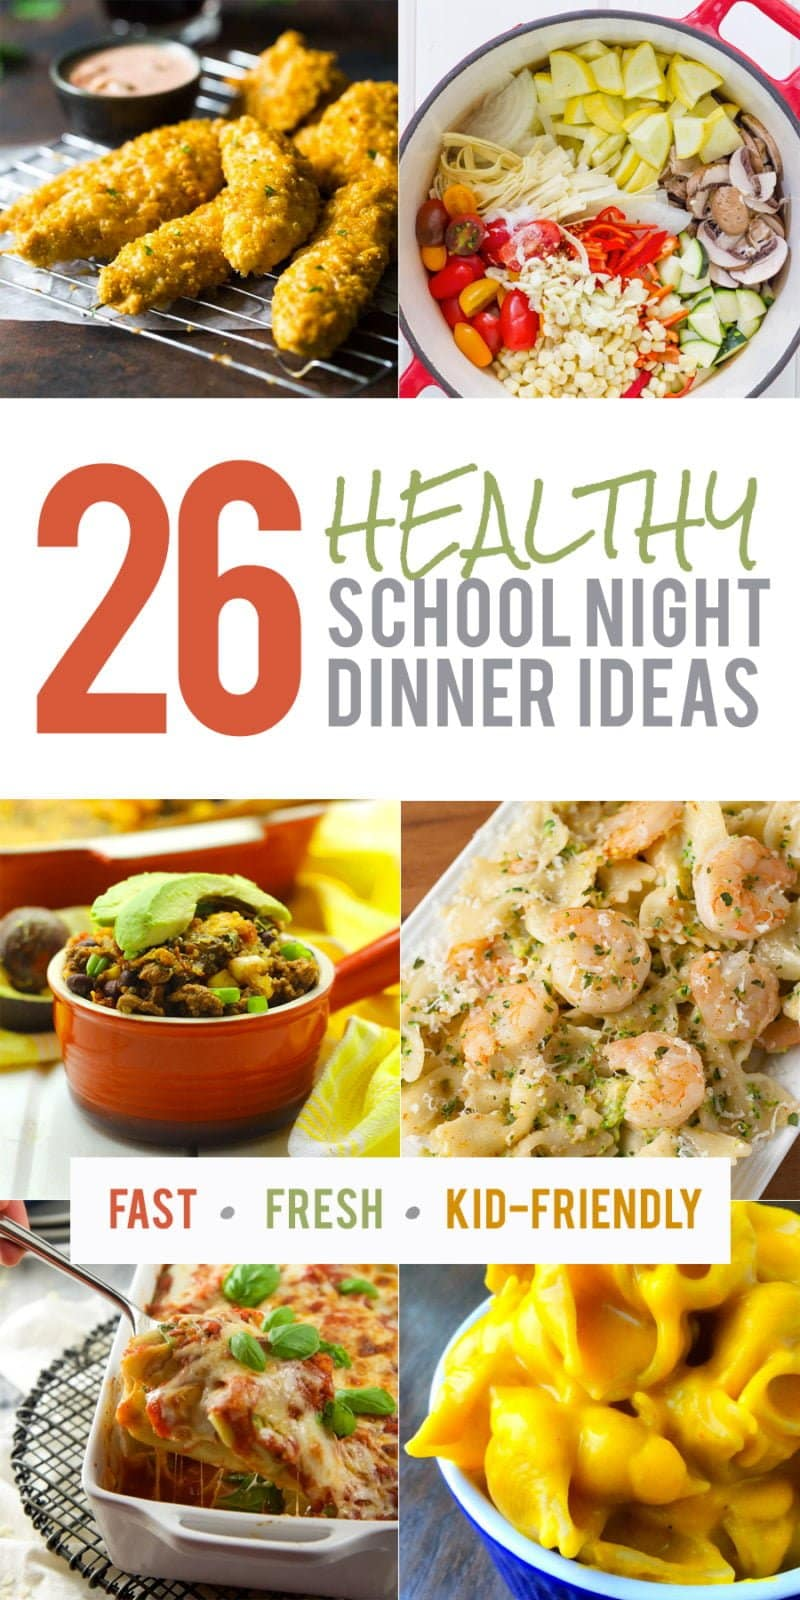 26 Healthy School Night Dinner Ideas